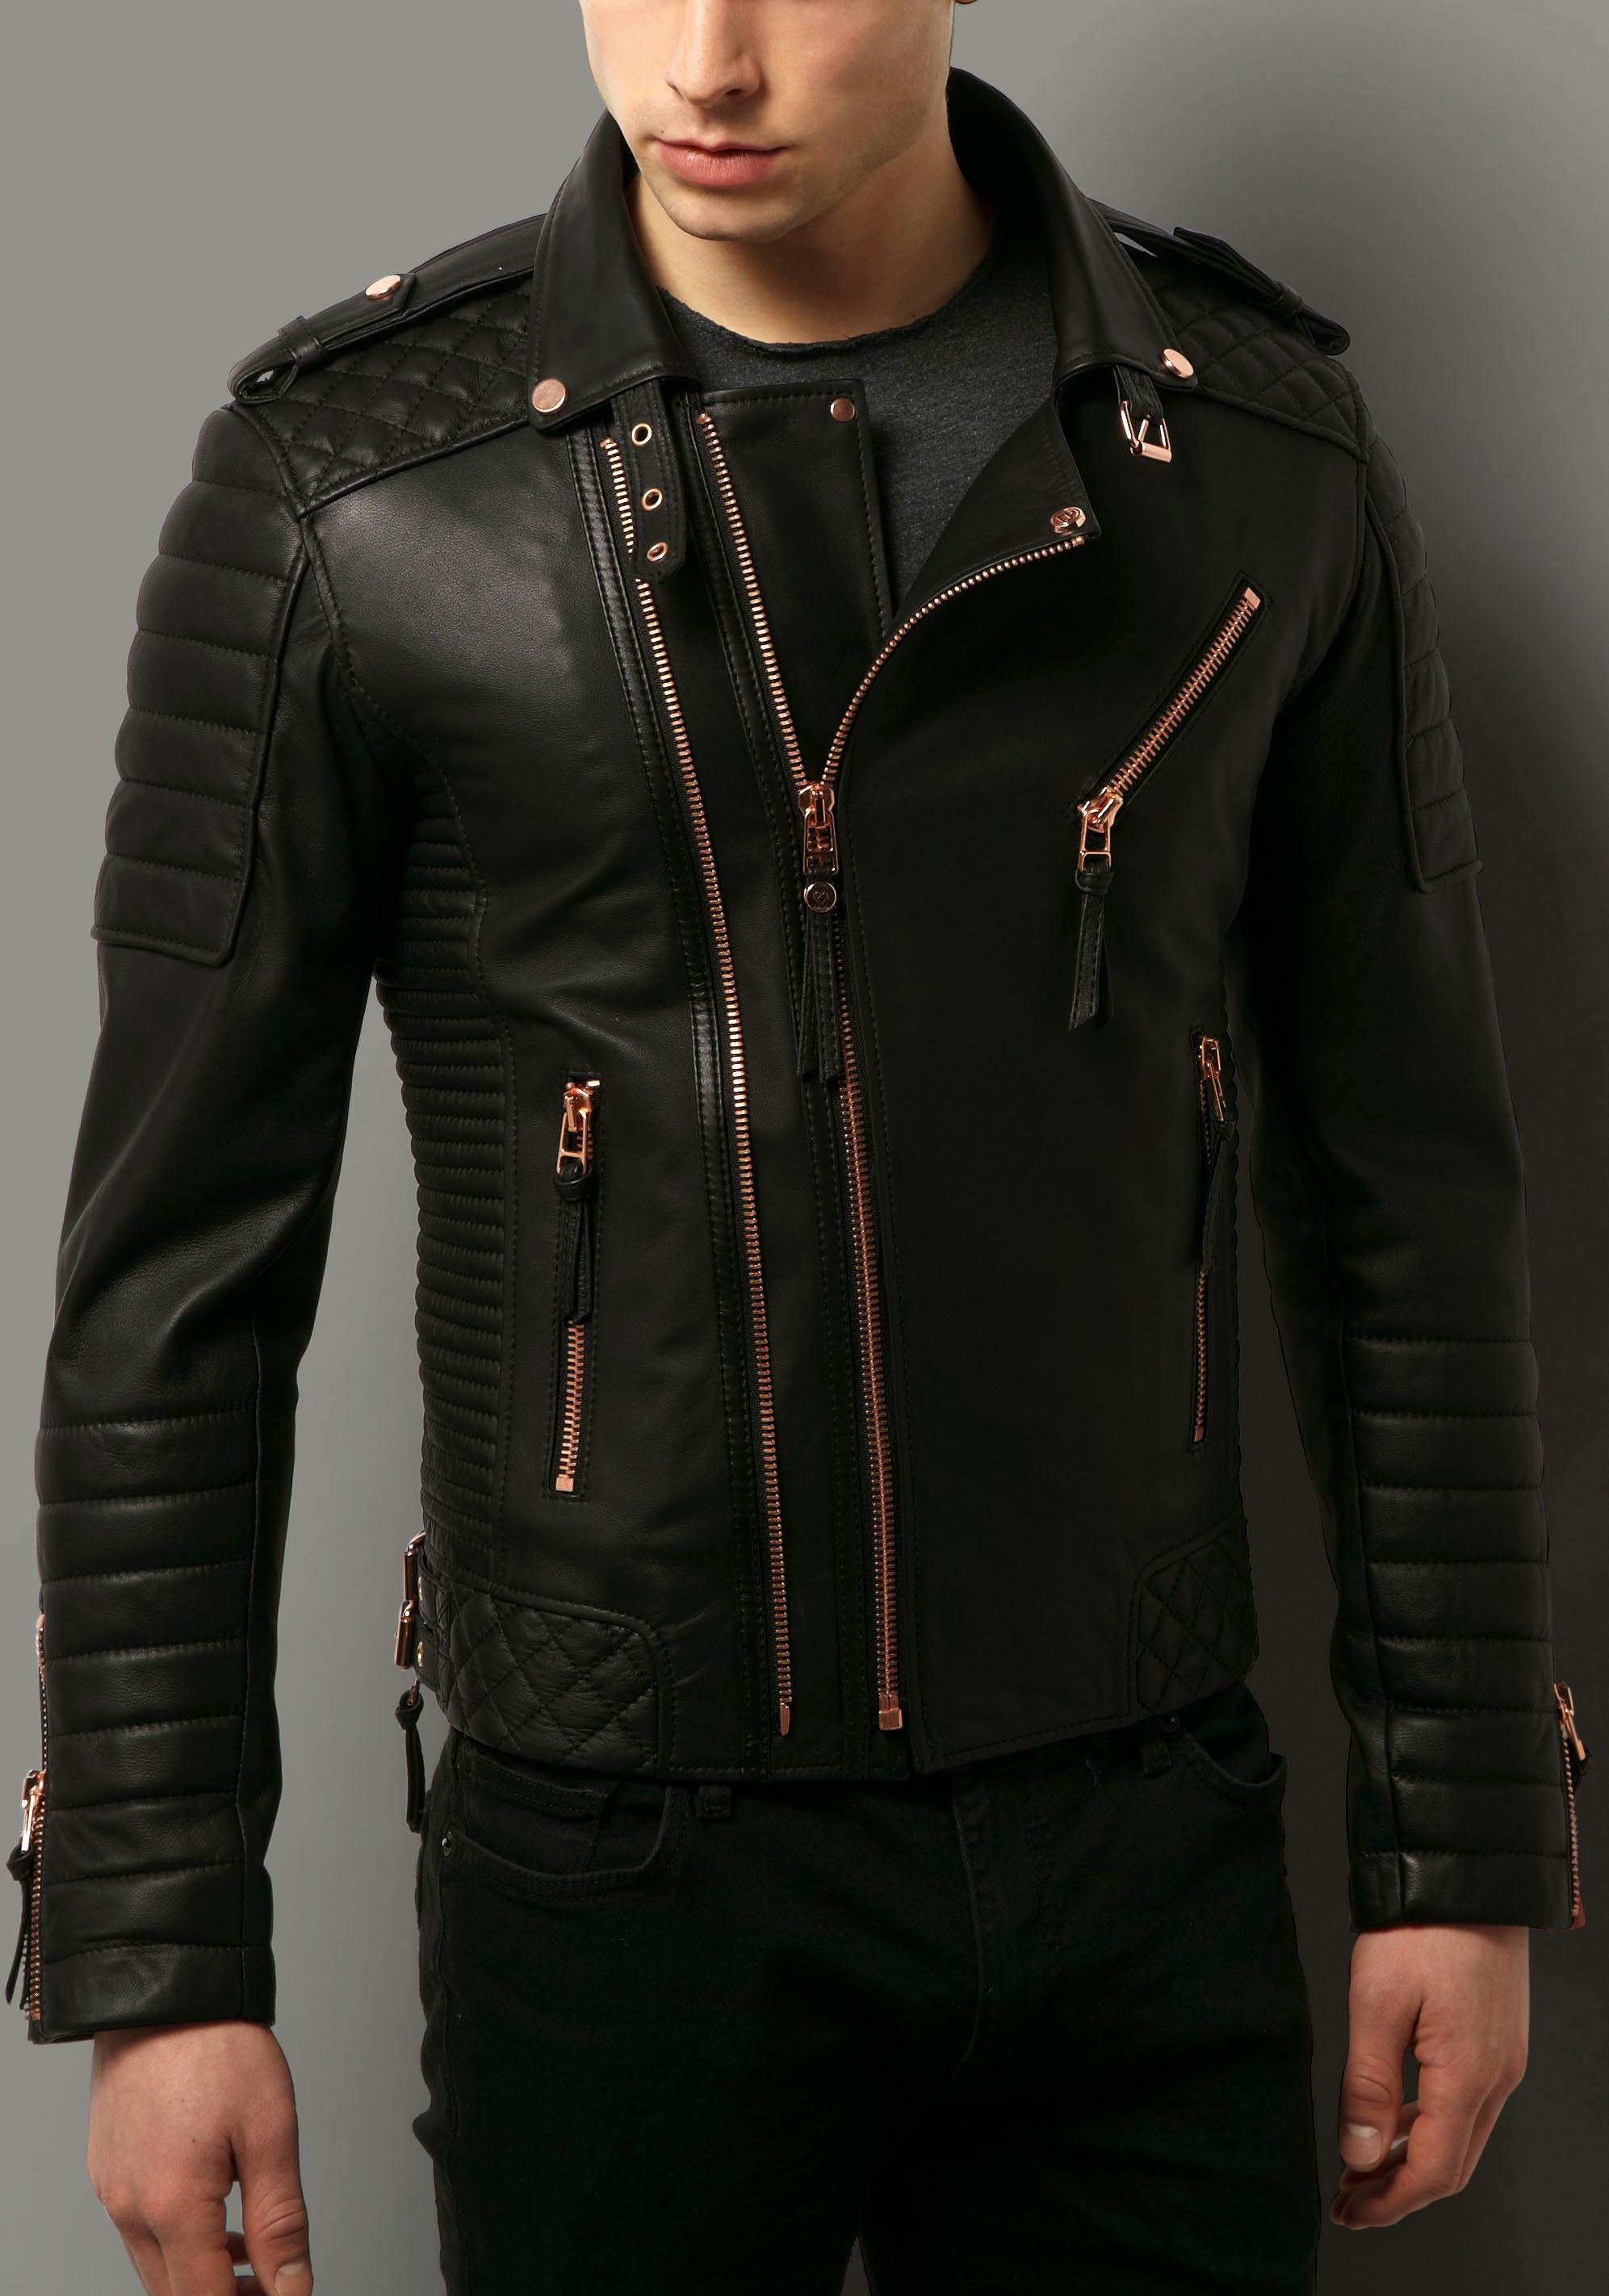 Kay Michaels Quilted Biker V.2 (Rose Gold Hardware) My